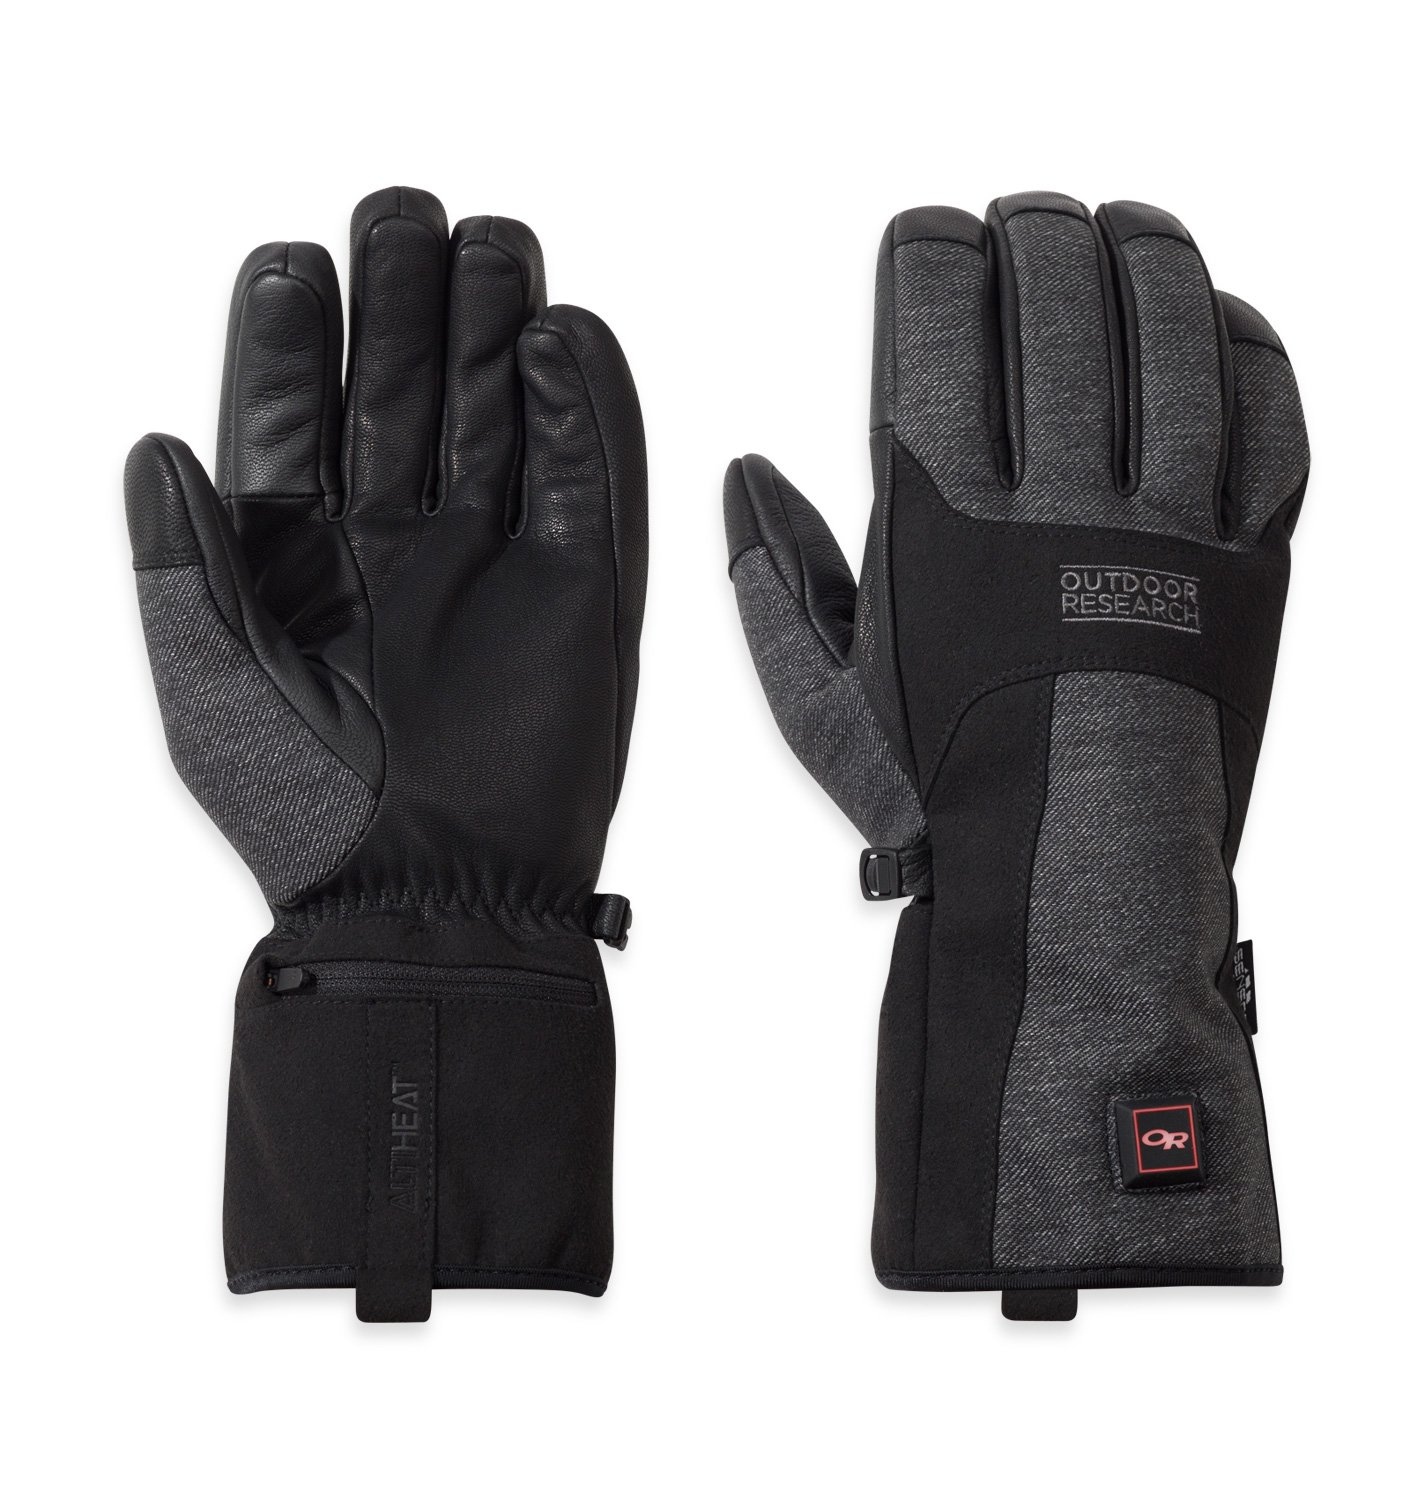 Outdoor Research Oberland Heated Gloves, Black/Charcoal, M by Outdoor Research